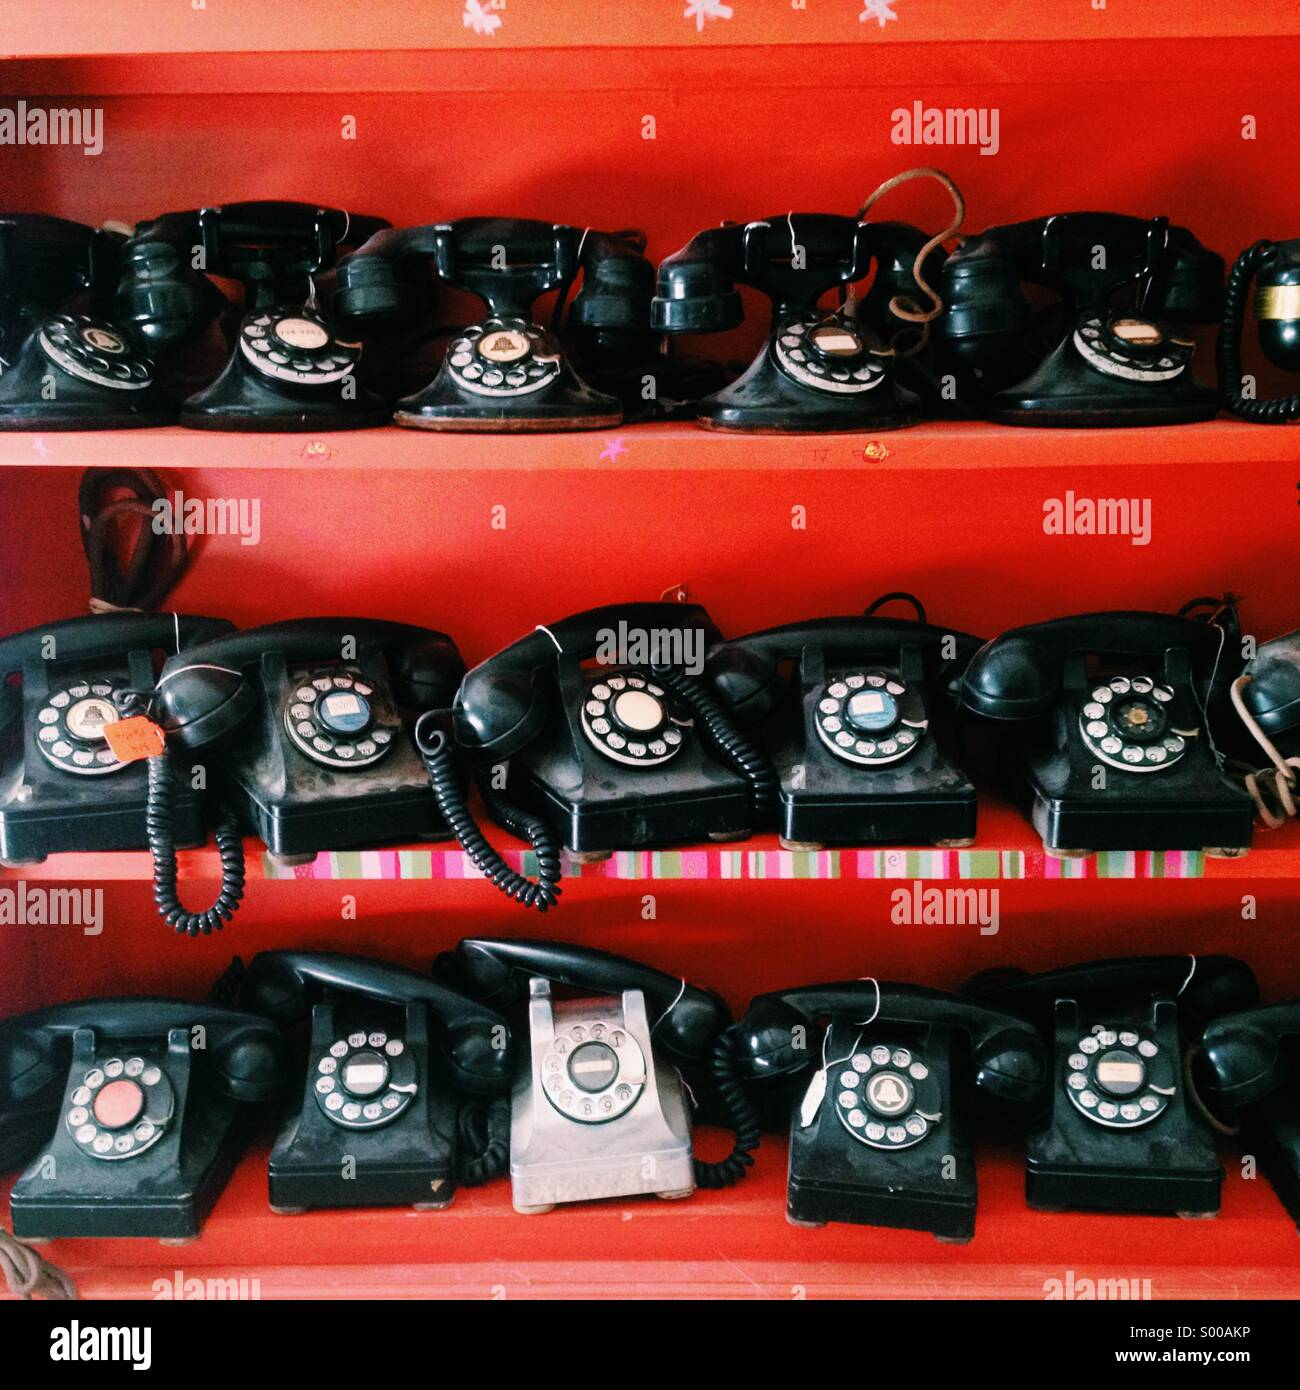 Rows of antique telephones - Stock Image